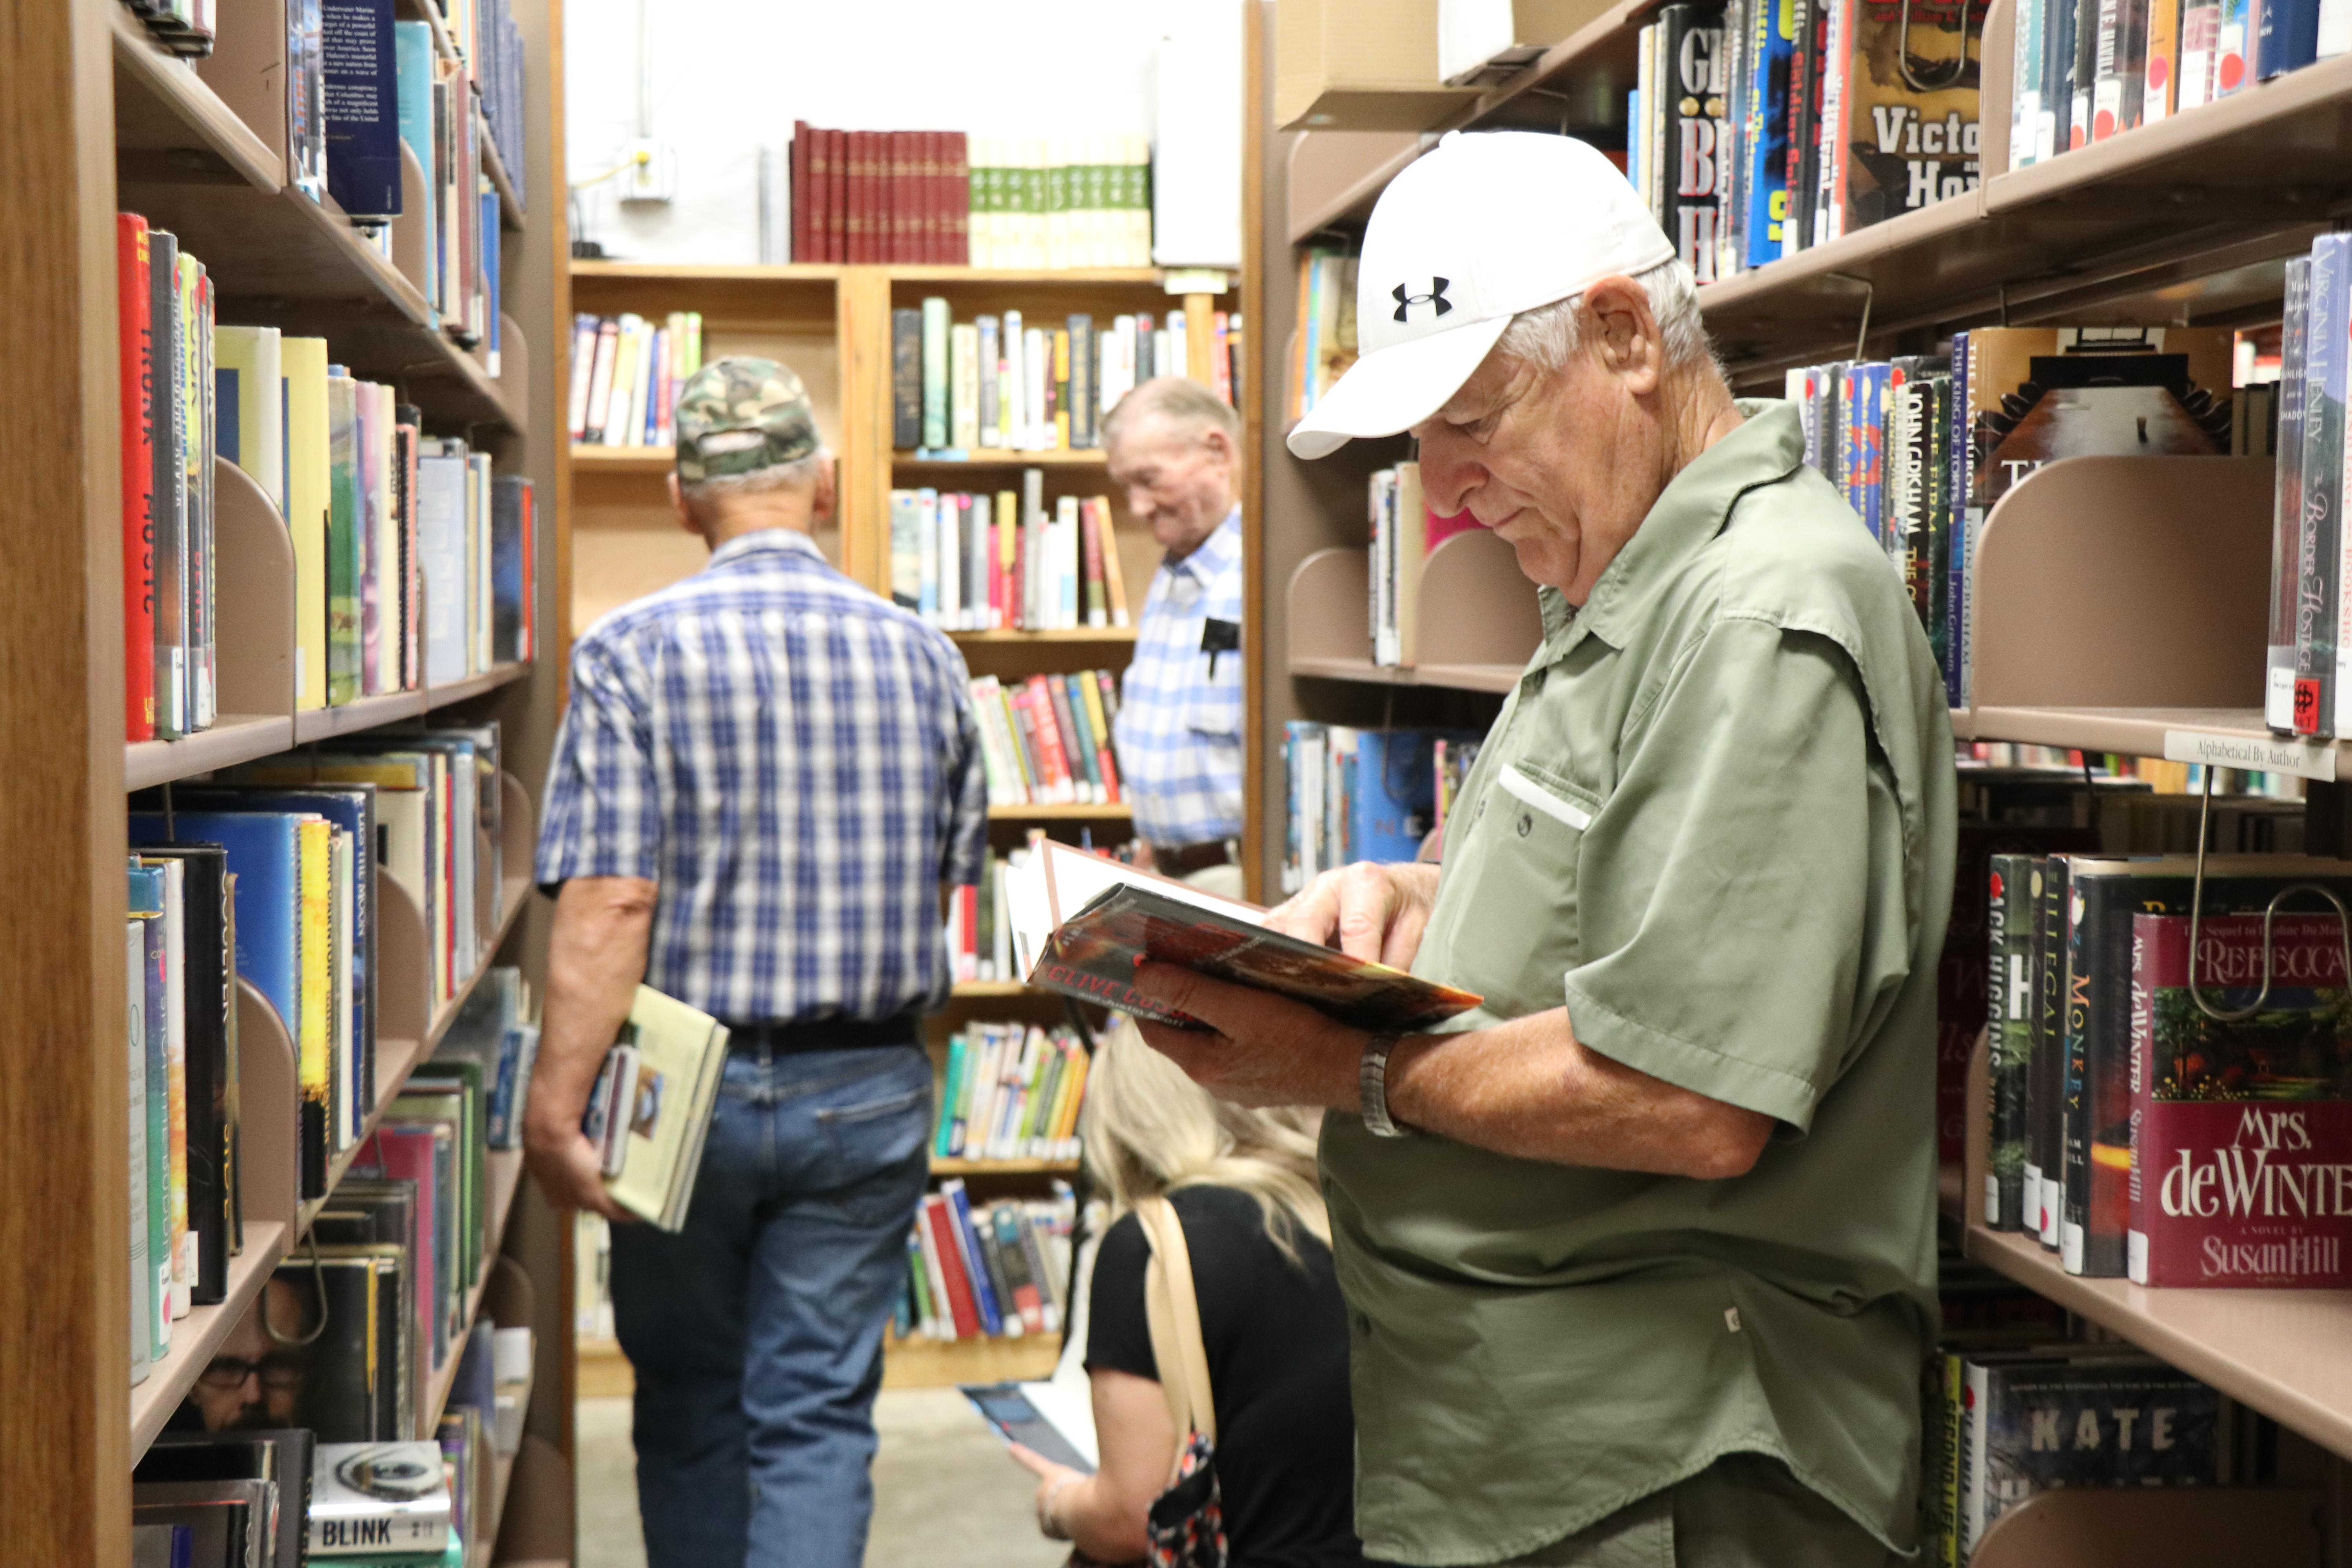 Two men stand in between bookshelves. One is looking down at a book.